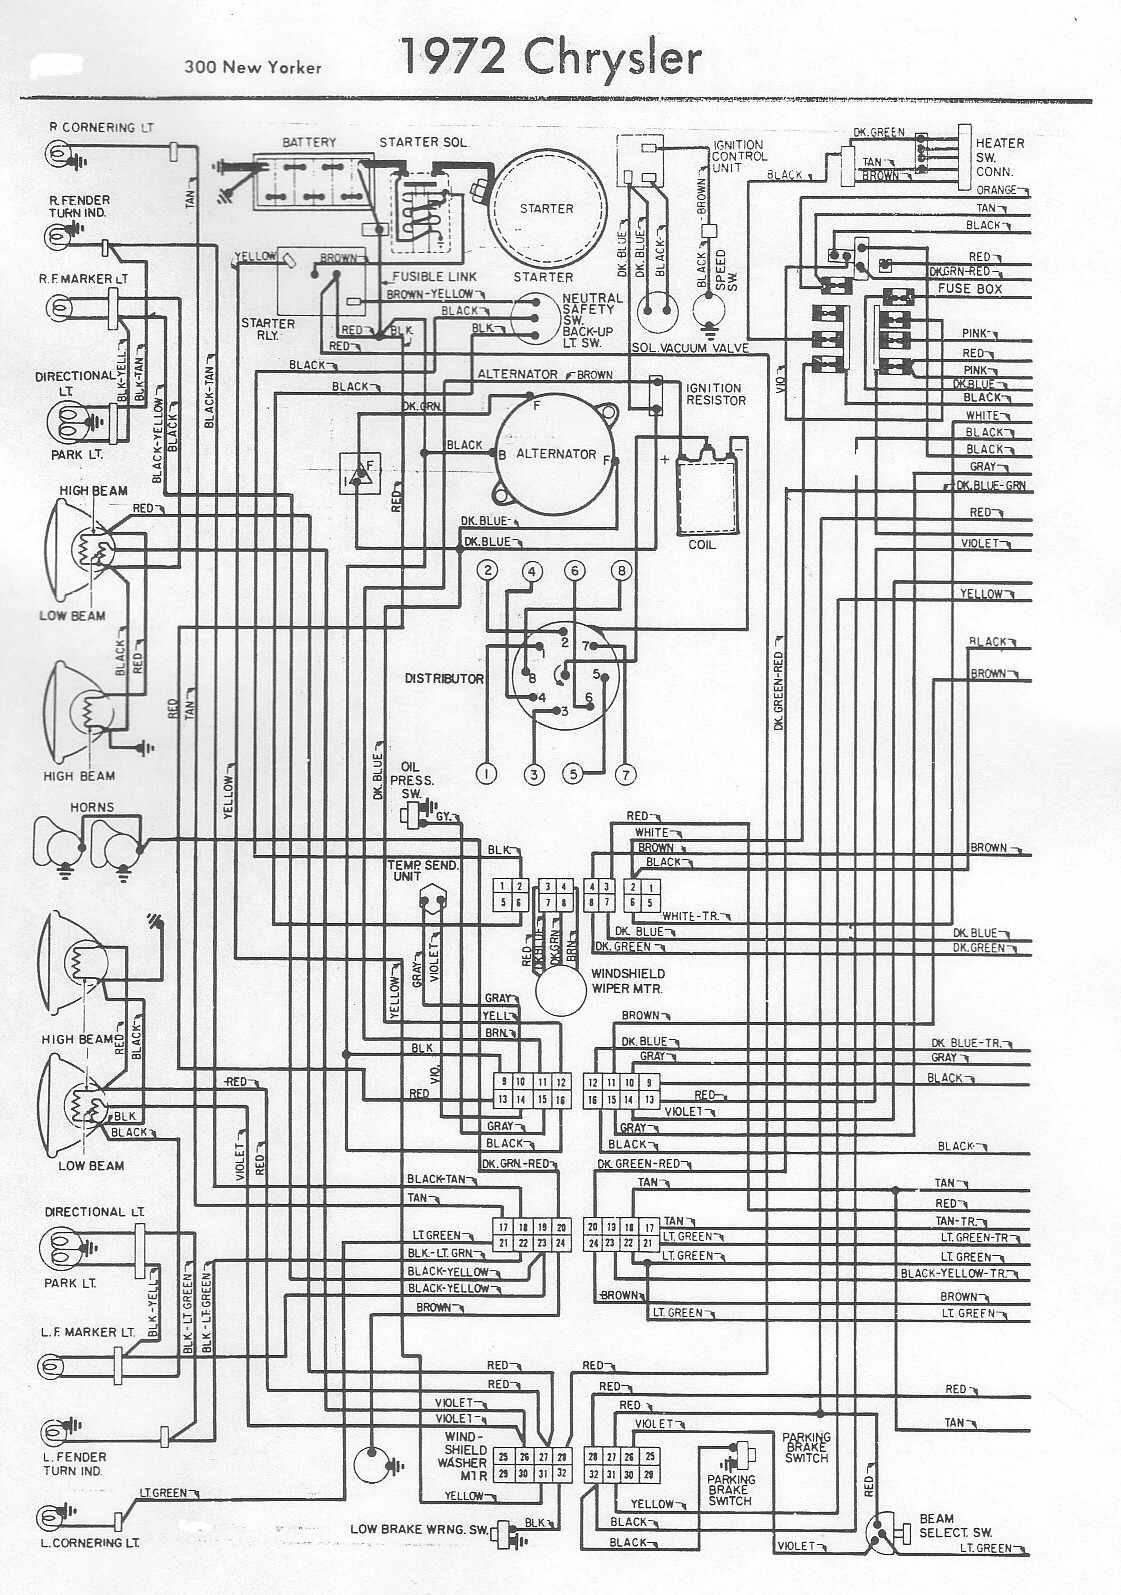 hight resolution of 2002 cadillac deville wiring harness wiring library2000 cadillac eldorado electrical diagrams schematics wiring 2002 cadillac eldorado